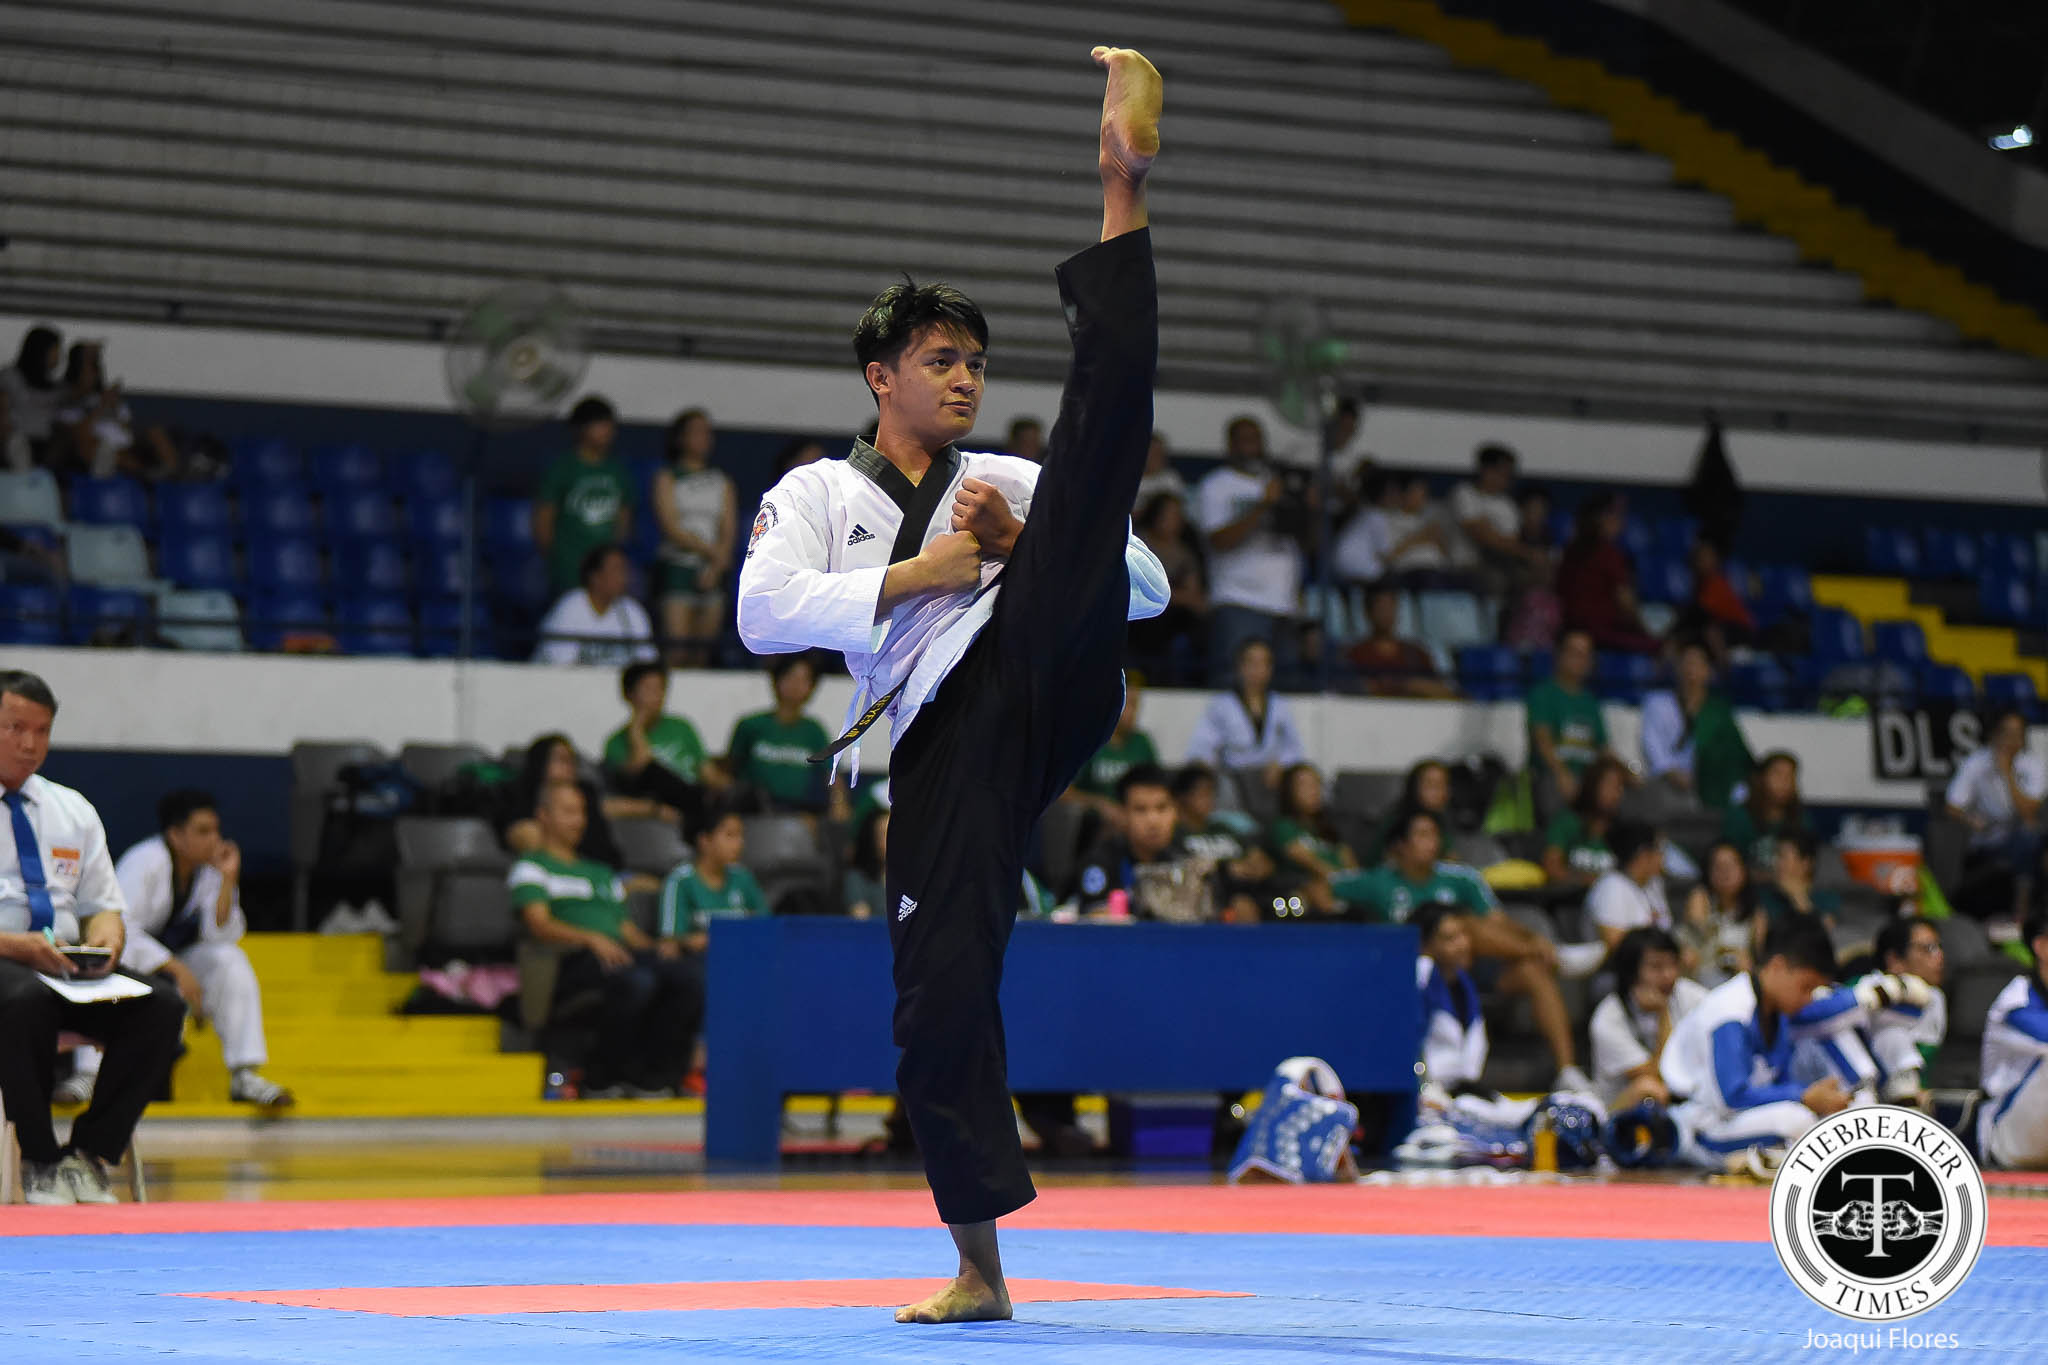 Tiebreaker Times Junior Reyes opens SEAG taekwondo with poomsae gold 2019 SEA Games News Taekwondo  Rodolfo Reyes Jr 2019 SEA Games - Taekwondo 2019 SEA Games